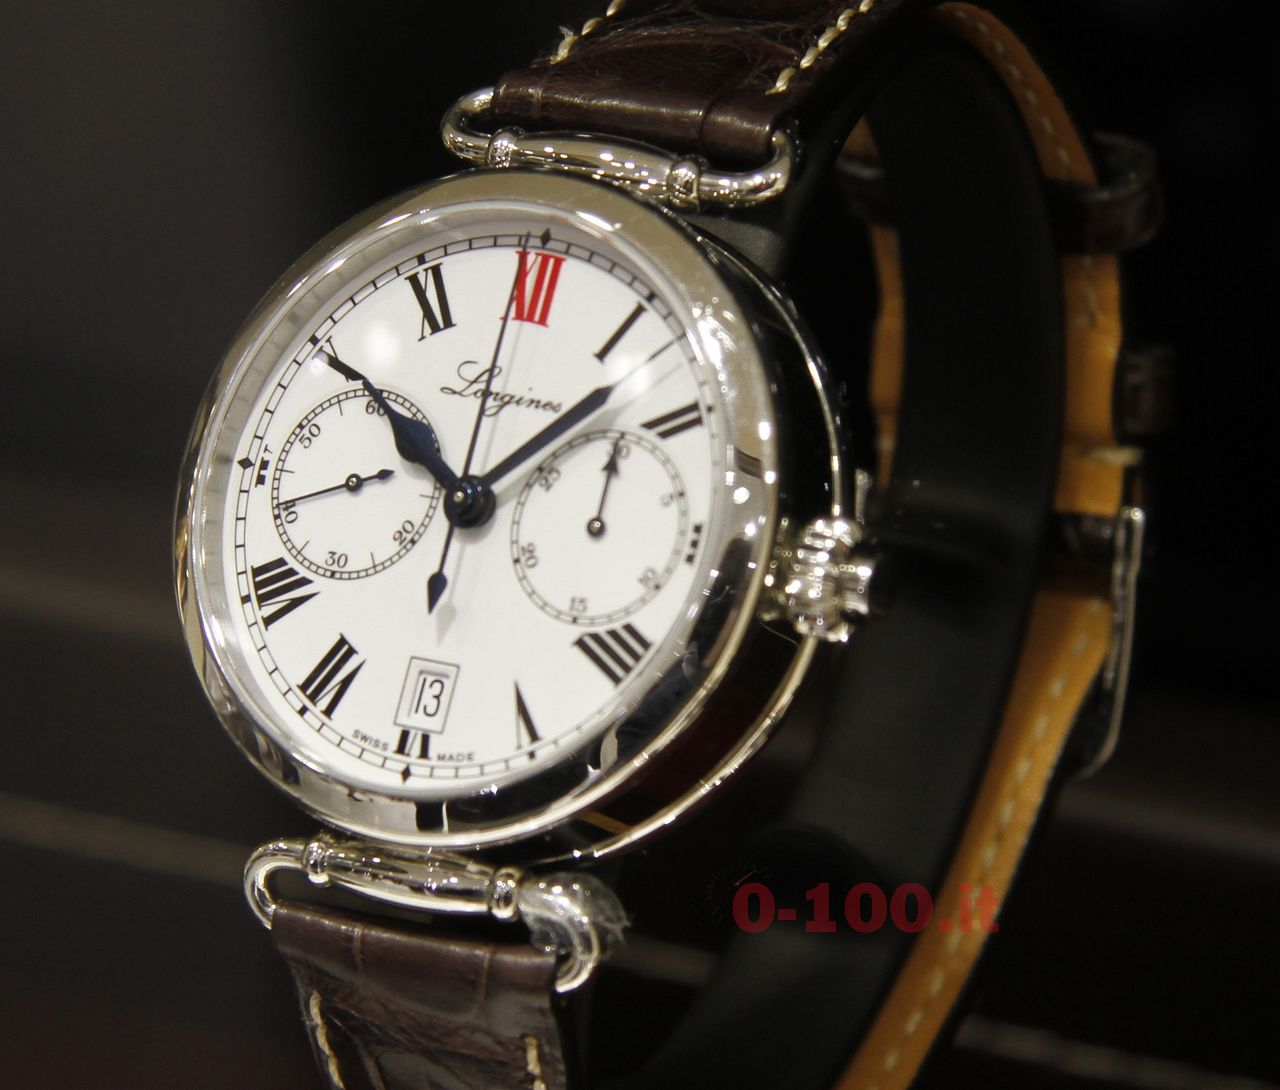 Longines Column-Wheel-Single-Push-Piece-Chronograph-0-100_4